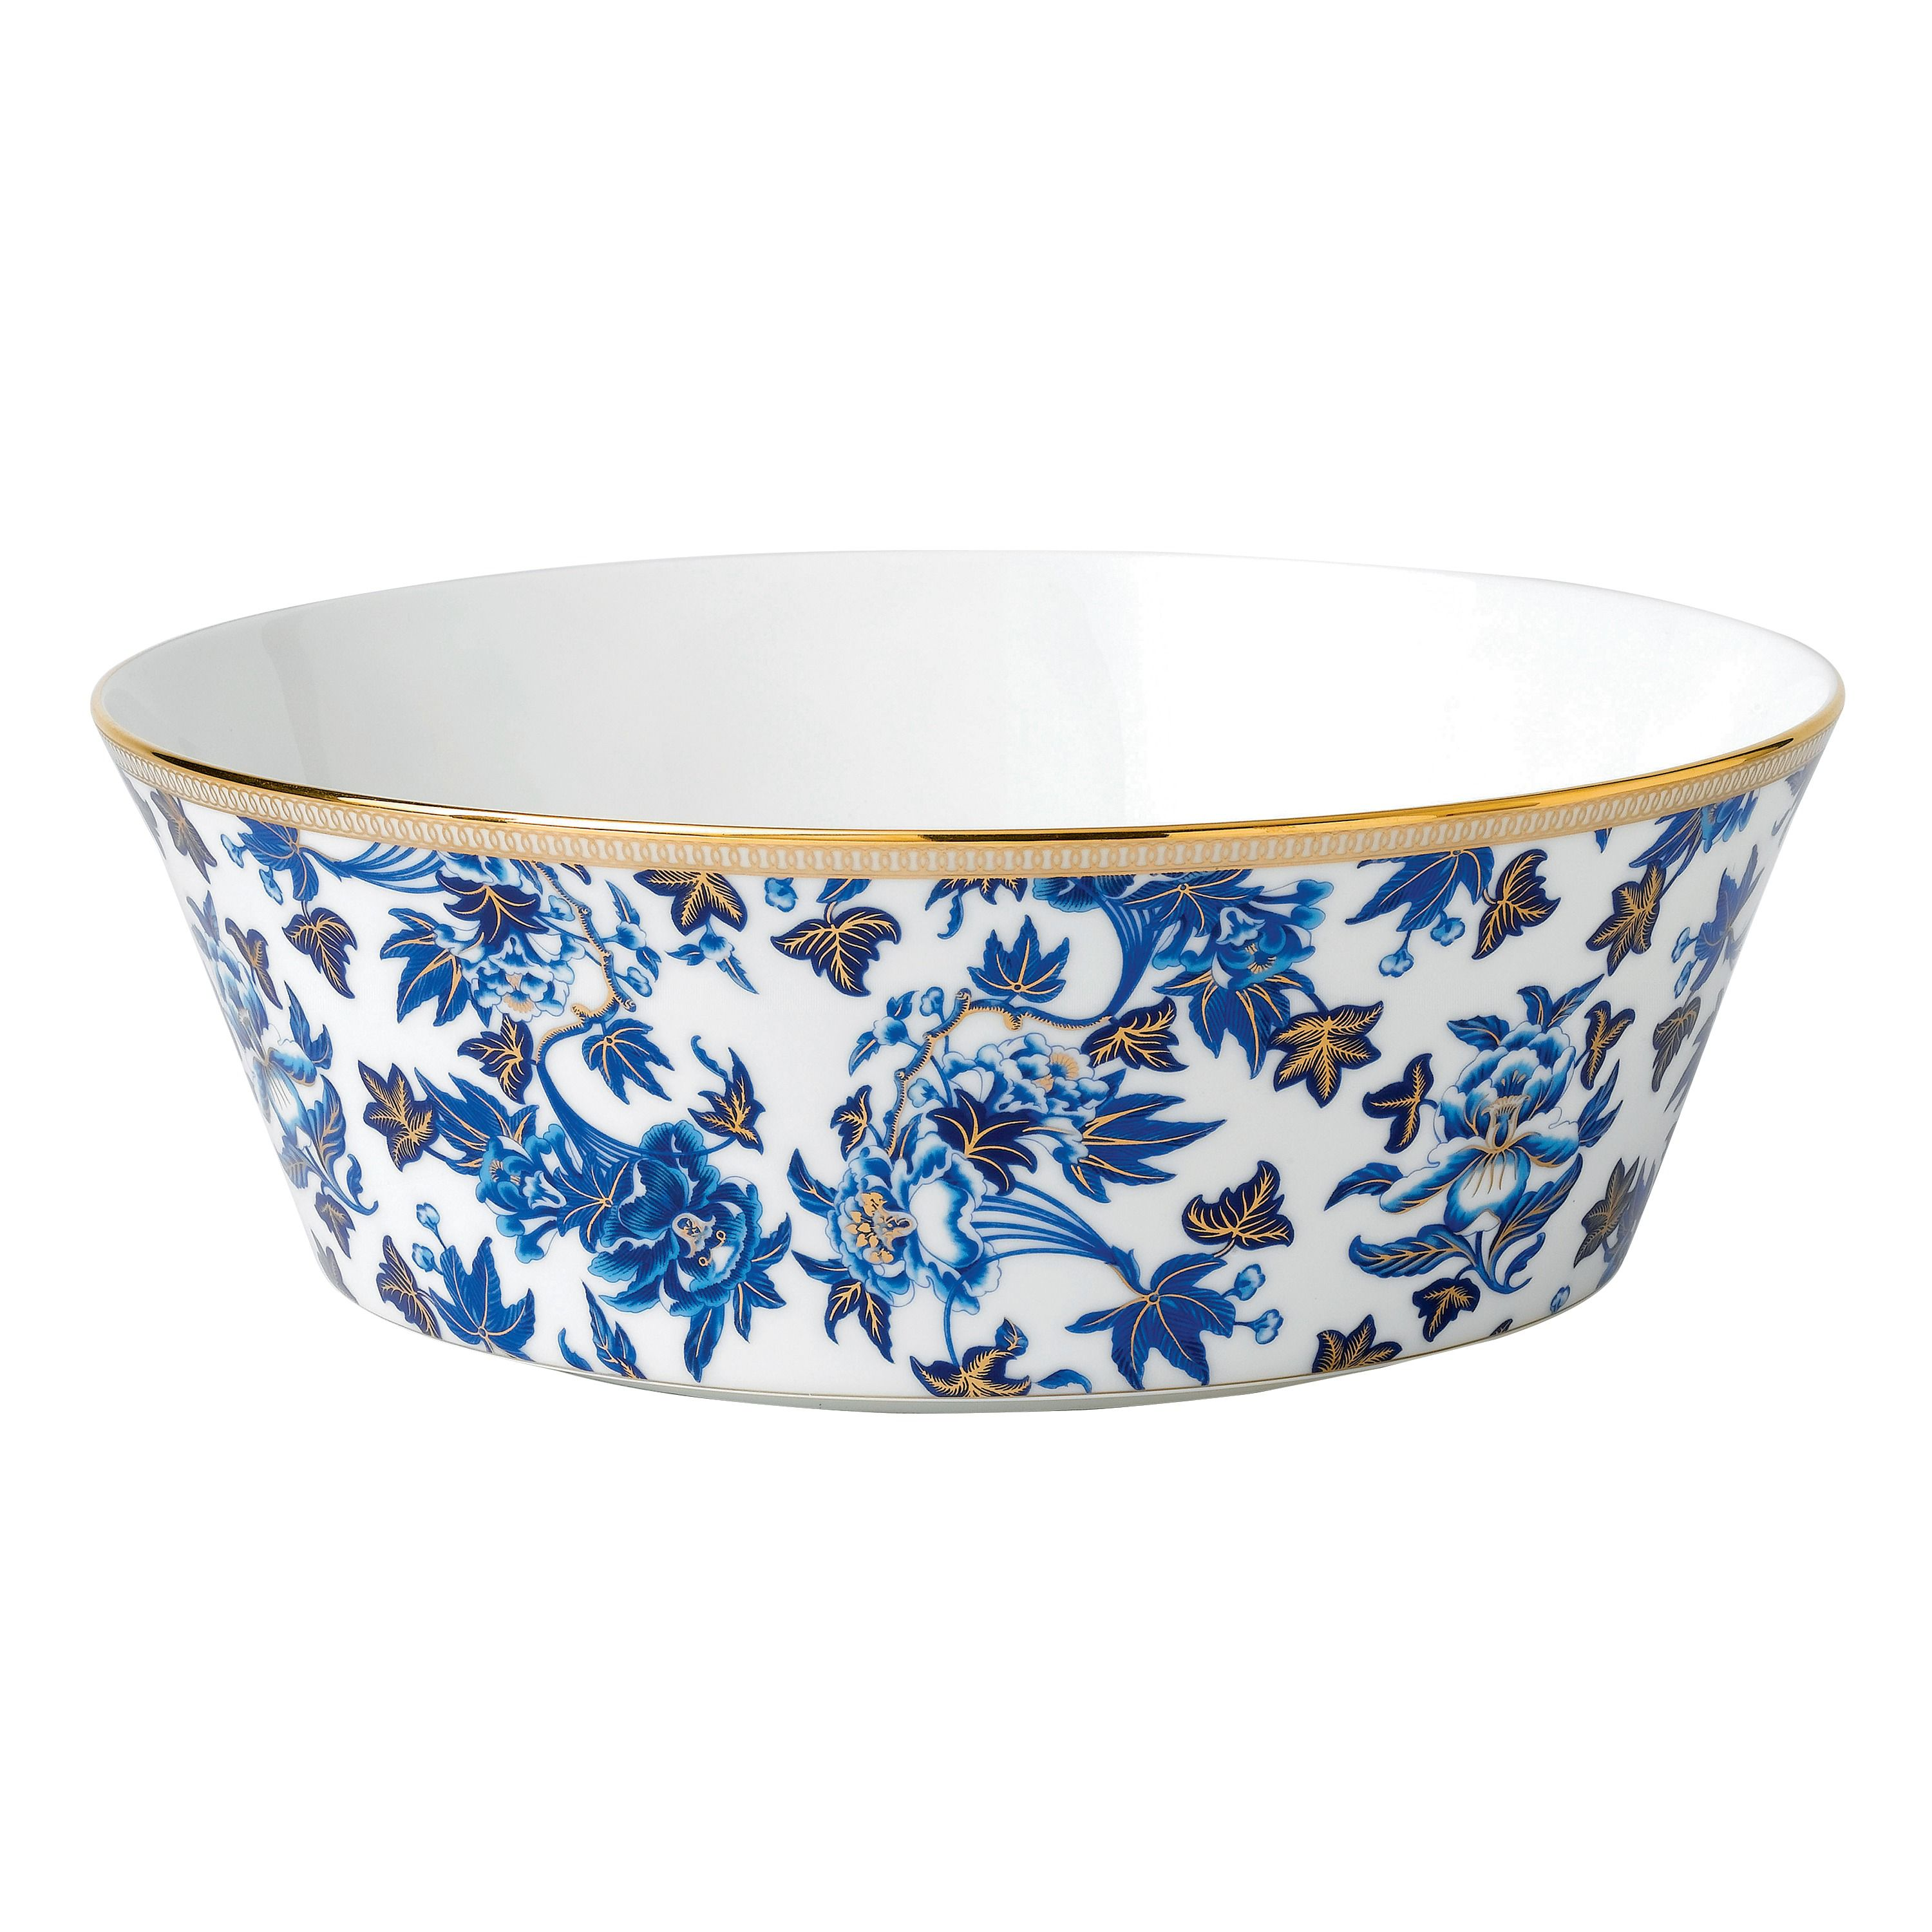 Wedgwood Hibiscus round serving bowl 25cm